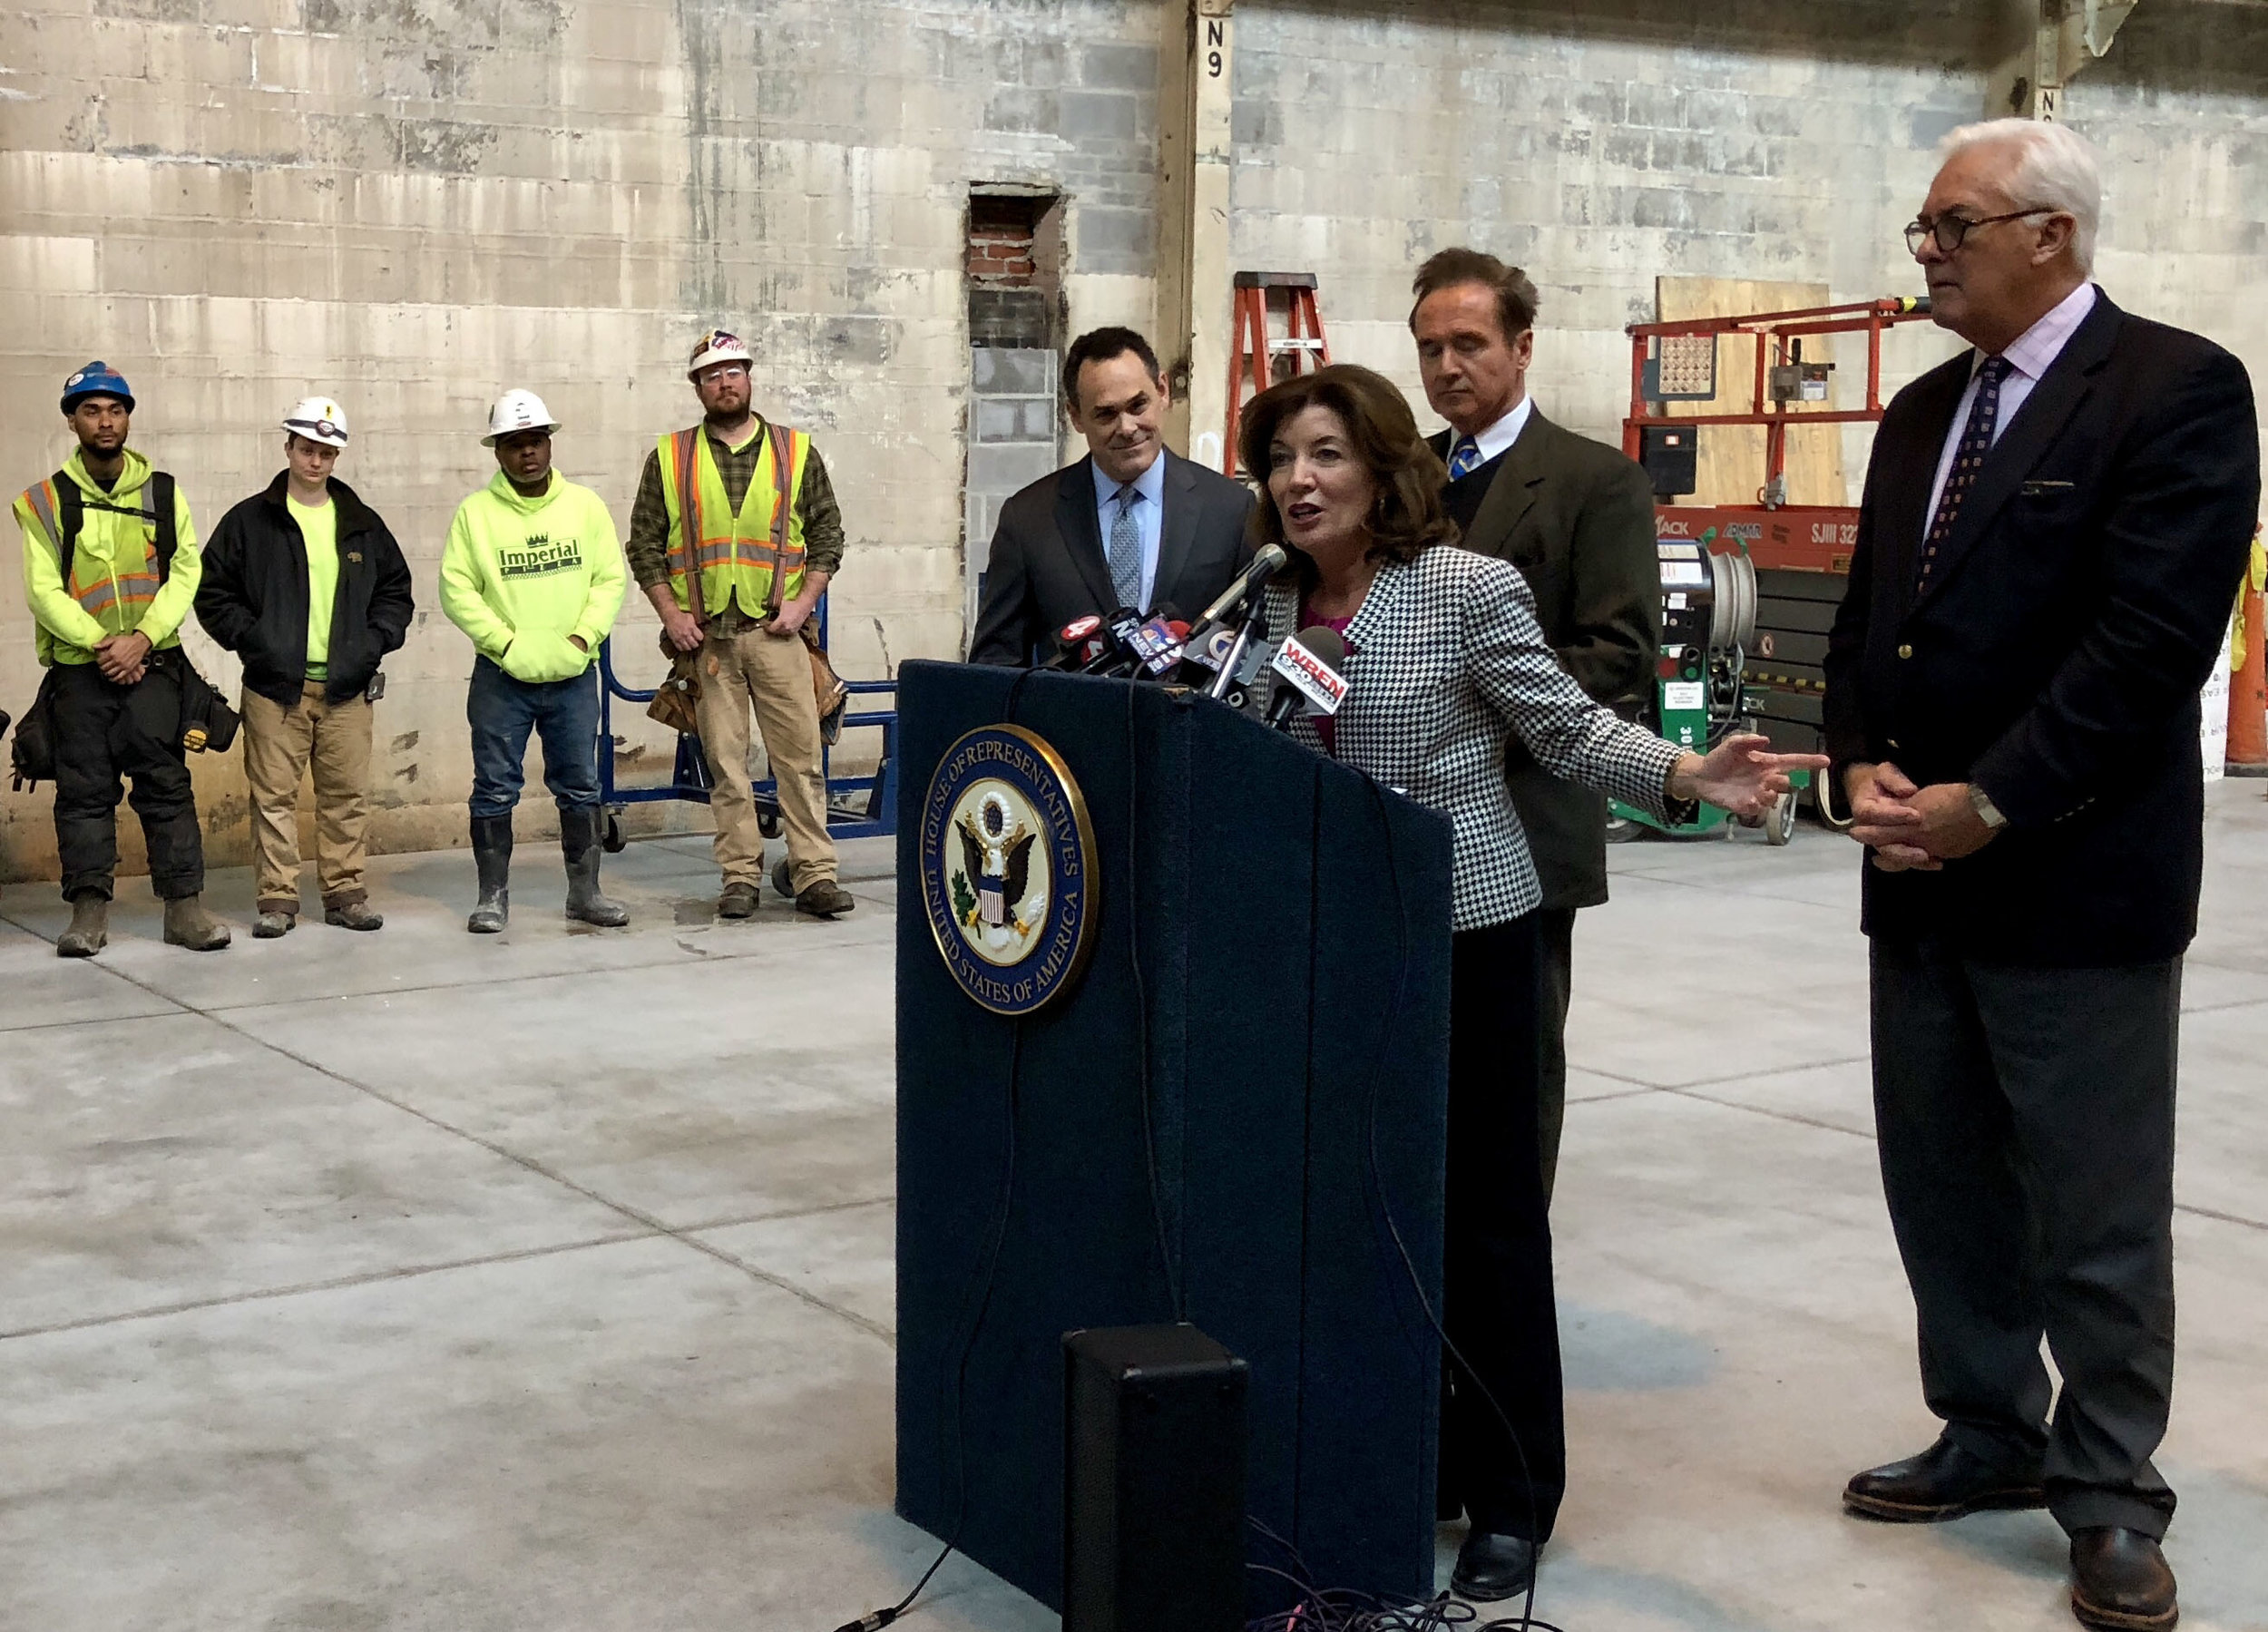 Lt. Governor Kathy Hochul addresses the crowd.